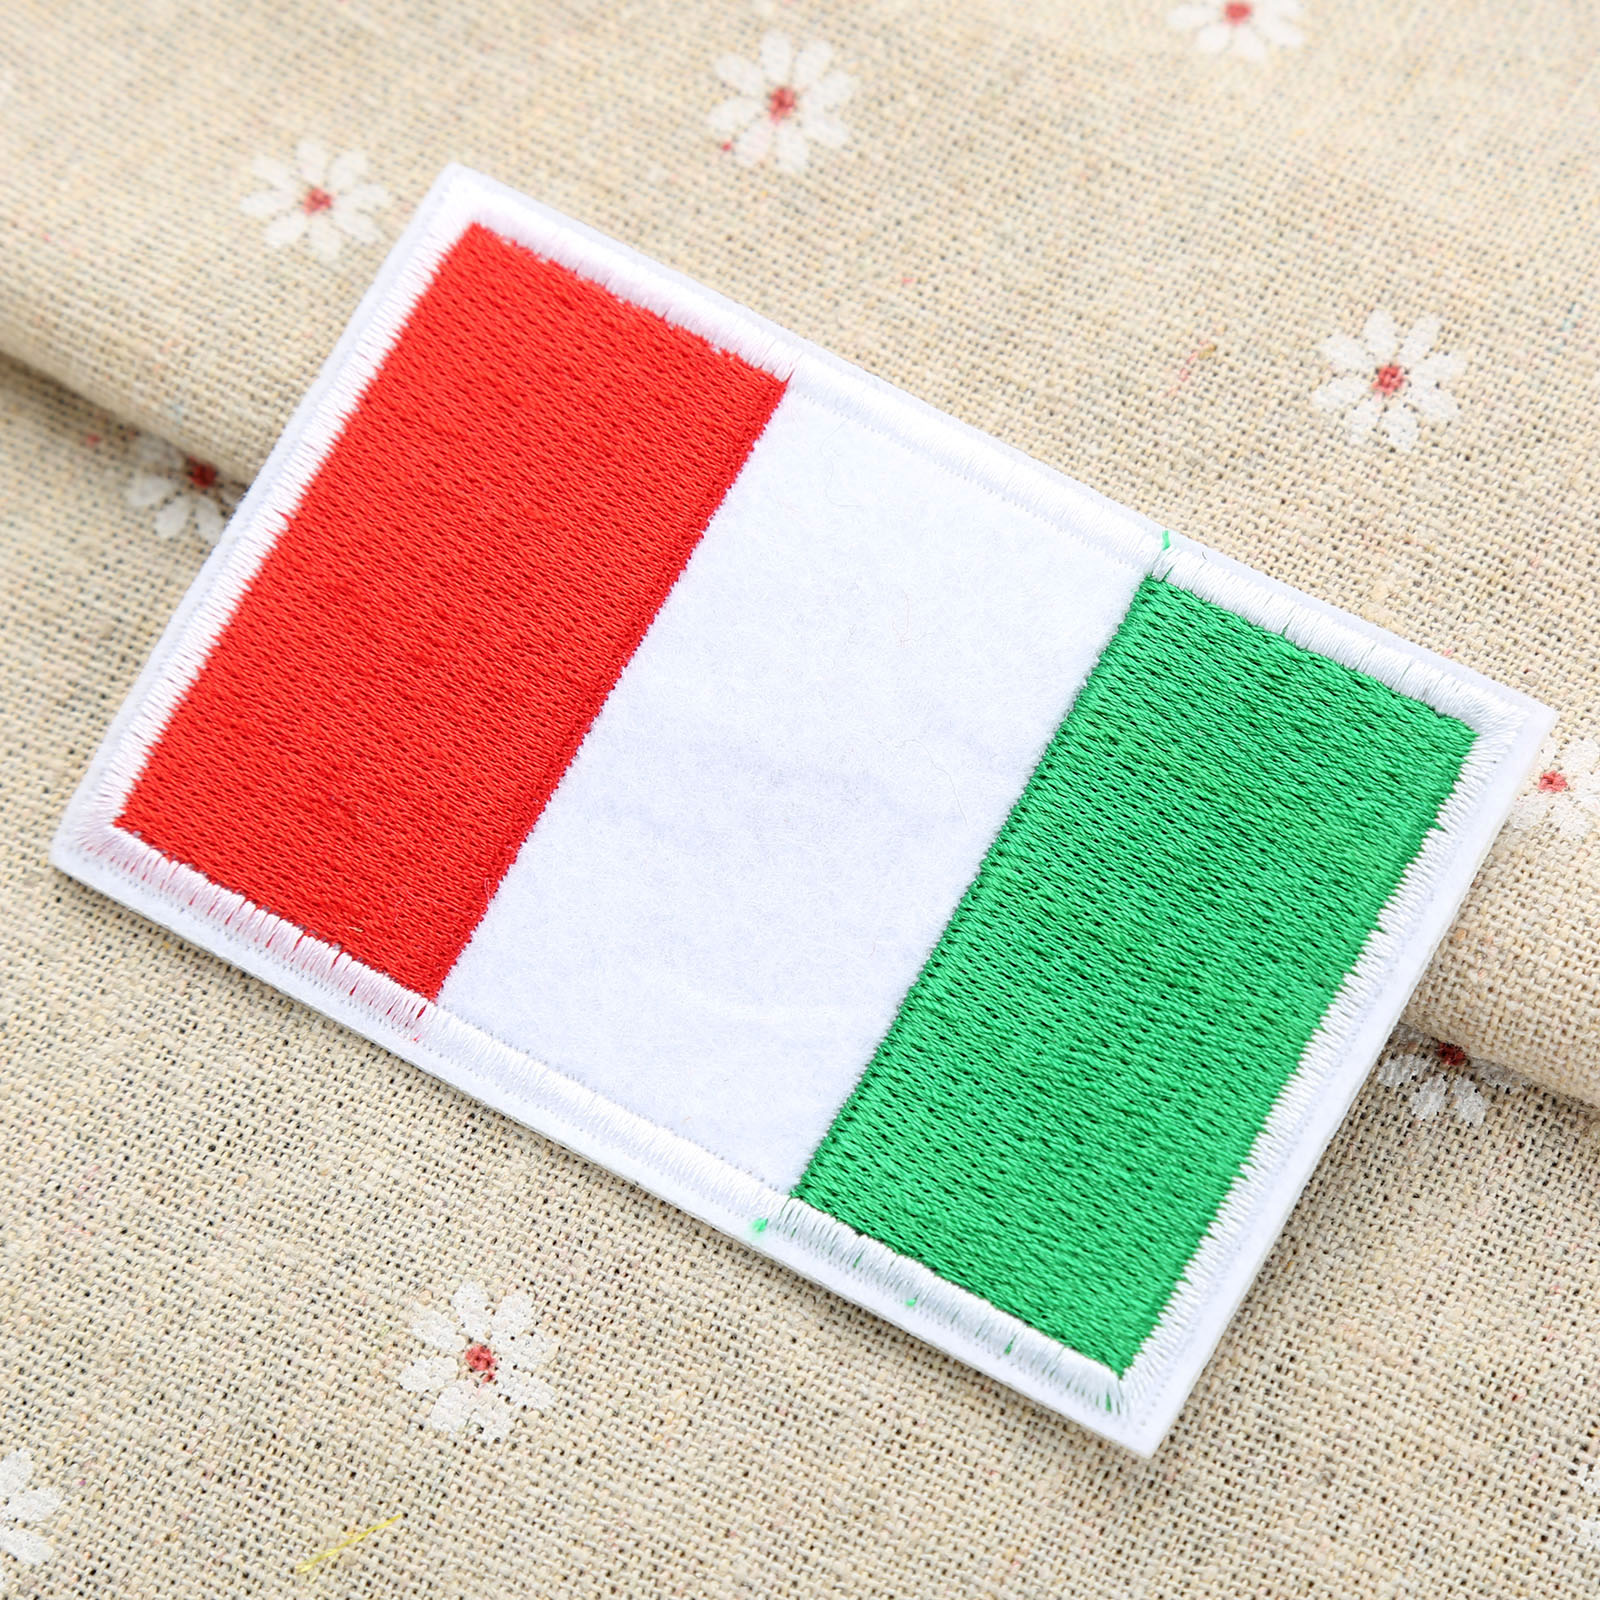 1 x italian italy flag patch patches iron sew on craft shirt fabric clothes new